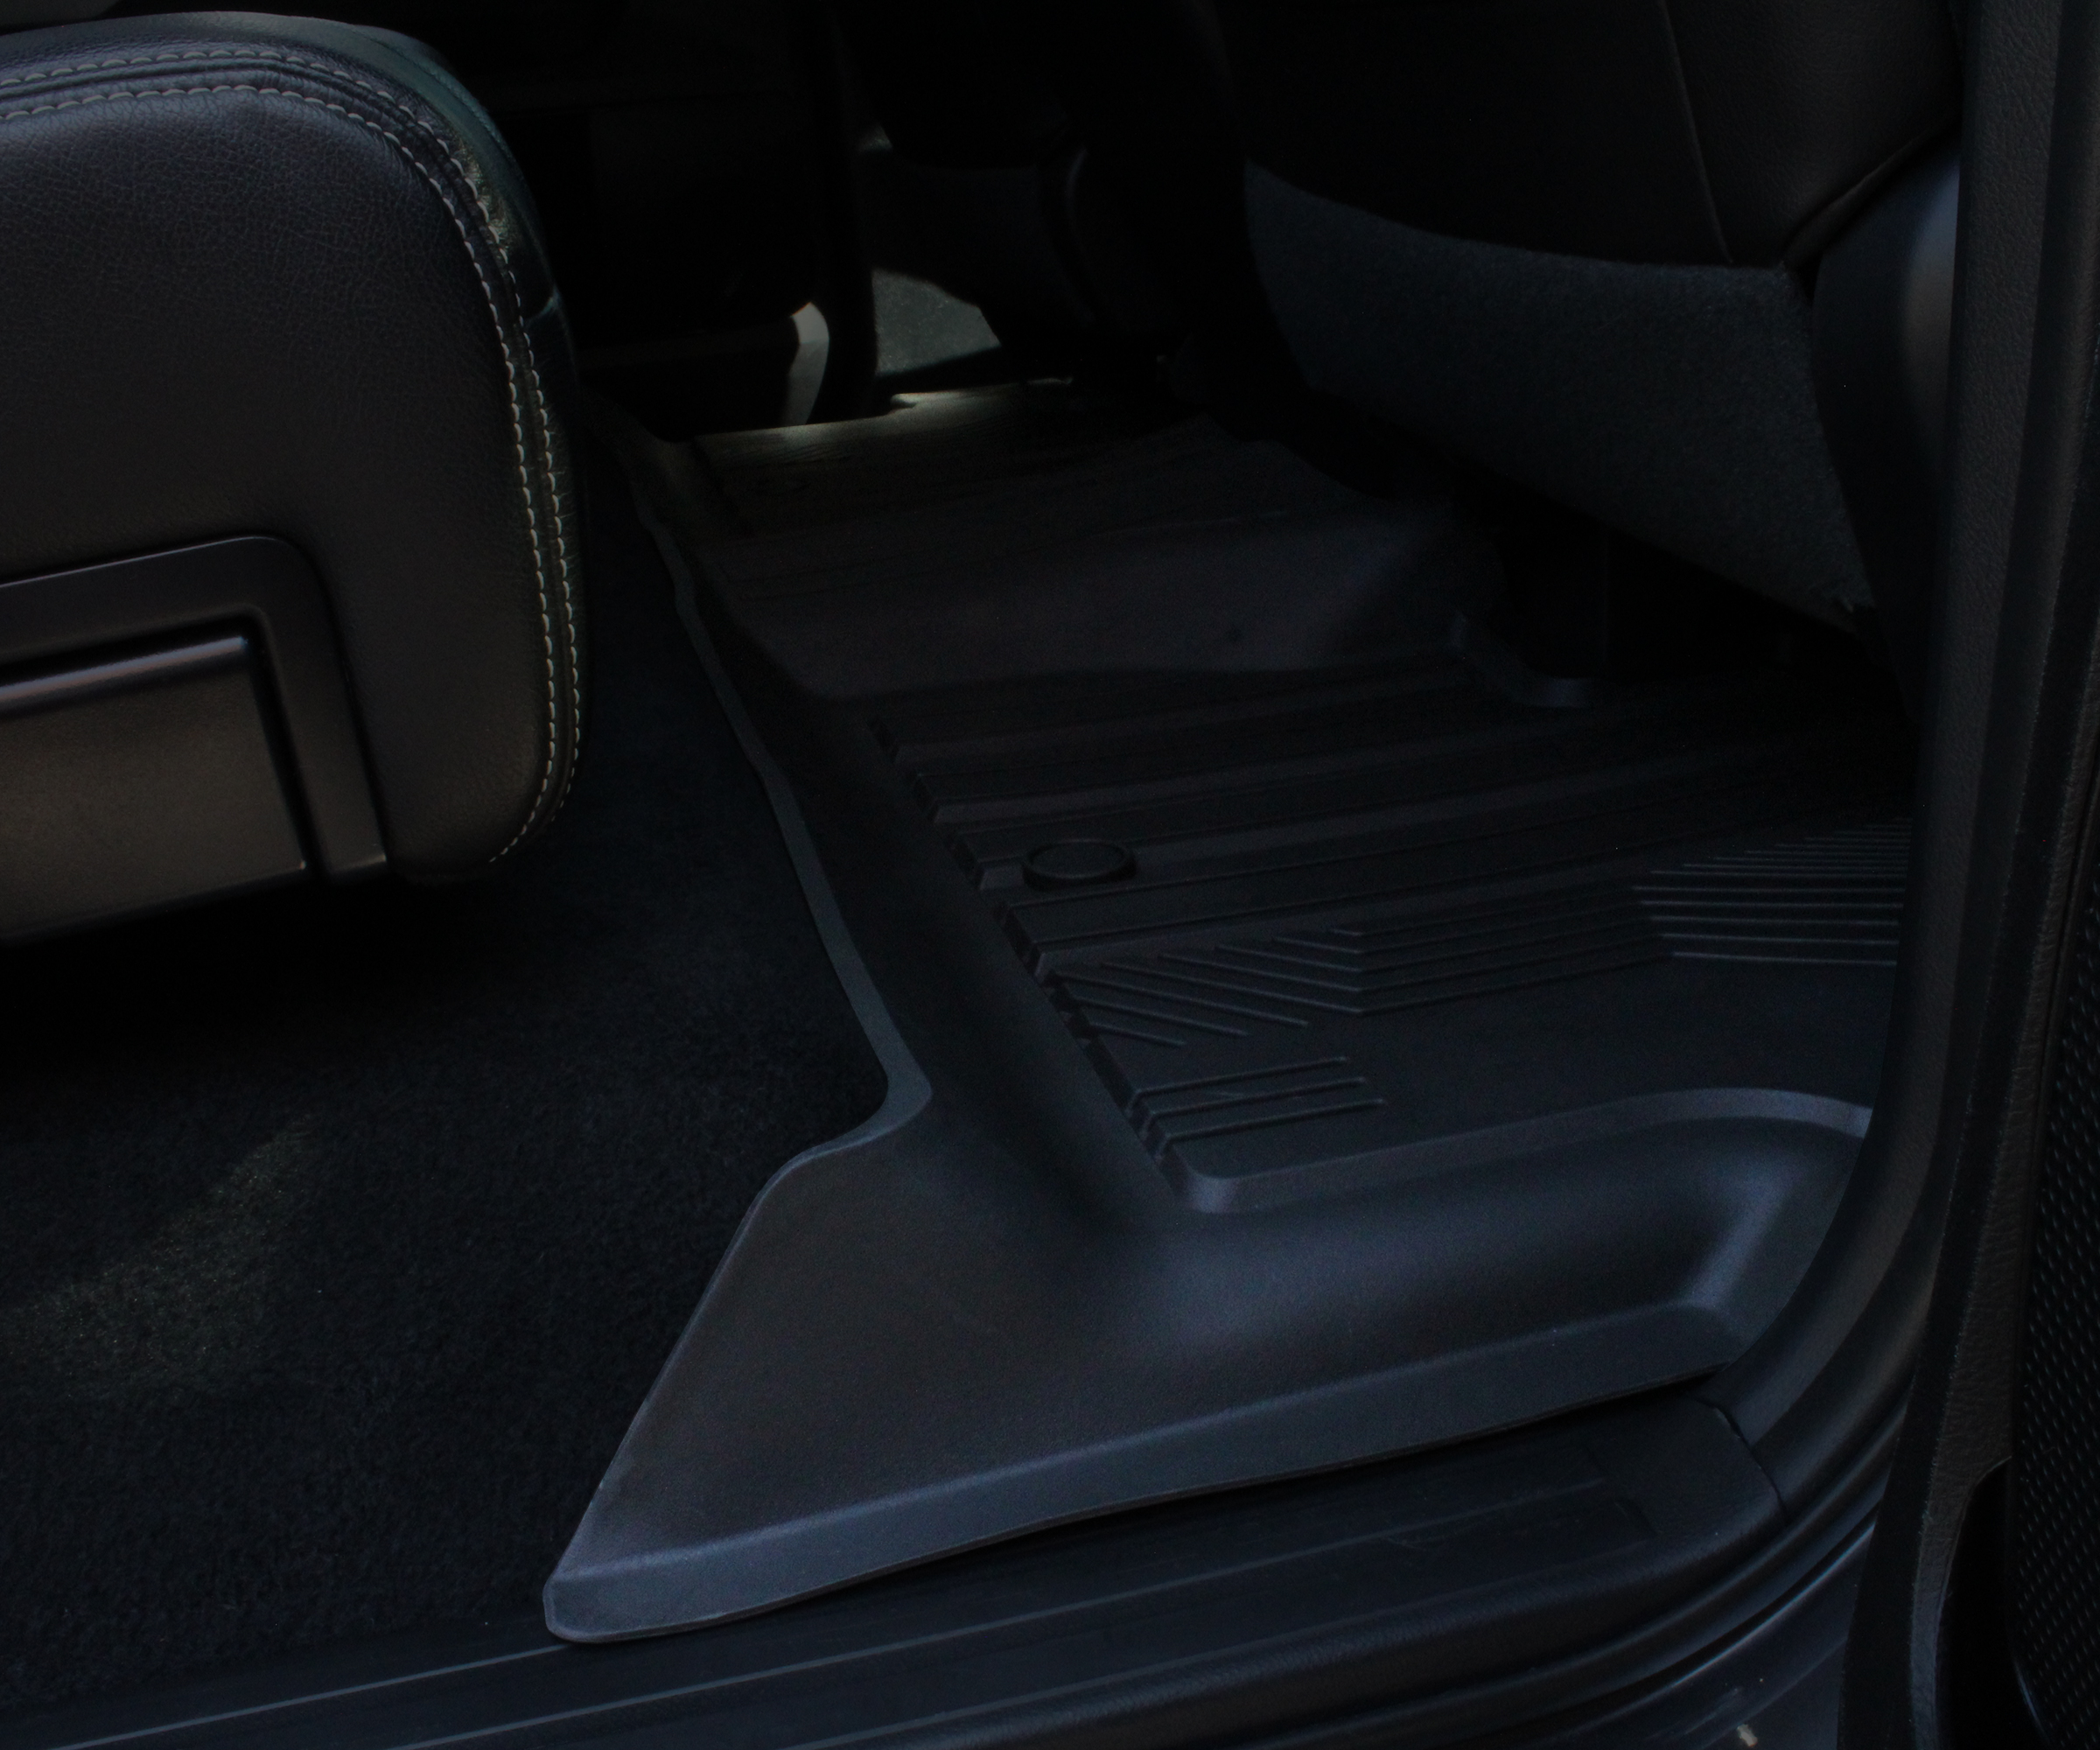 Image of Toyota Tundra Rear Seat All-Weather Floor Mat